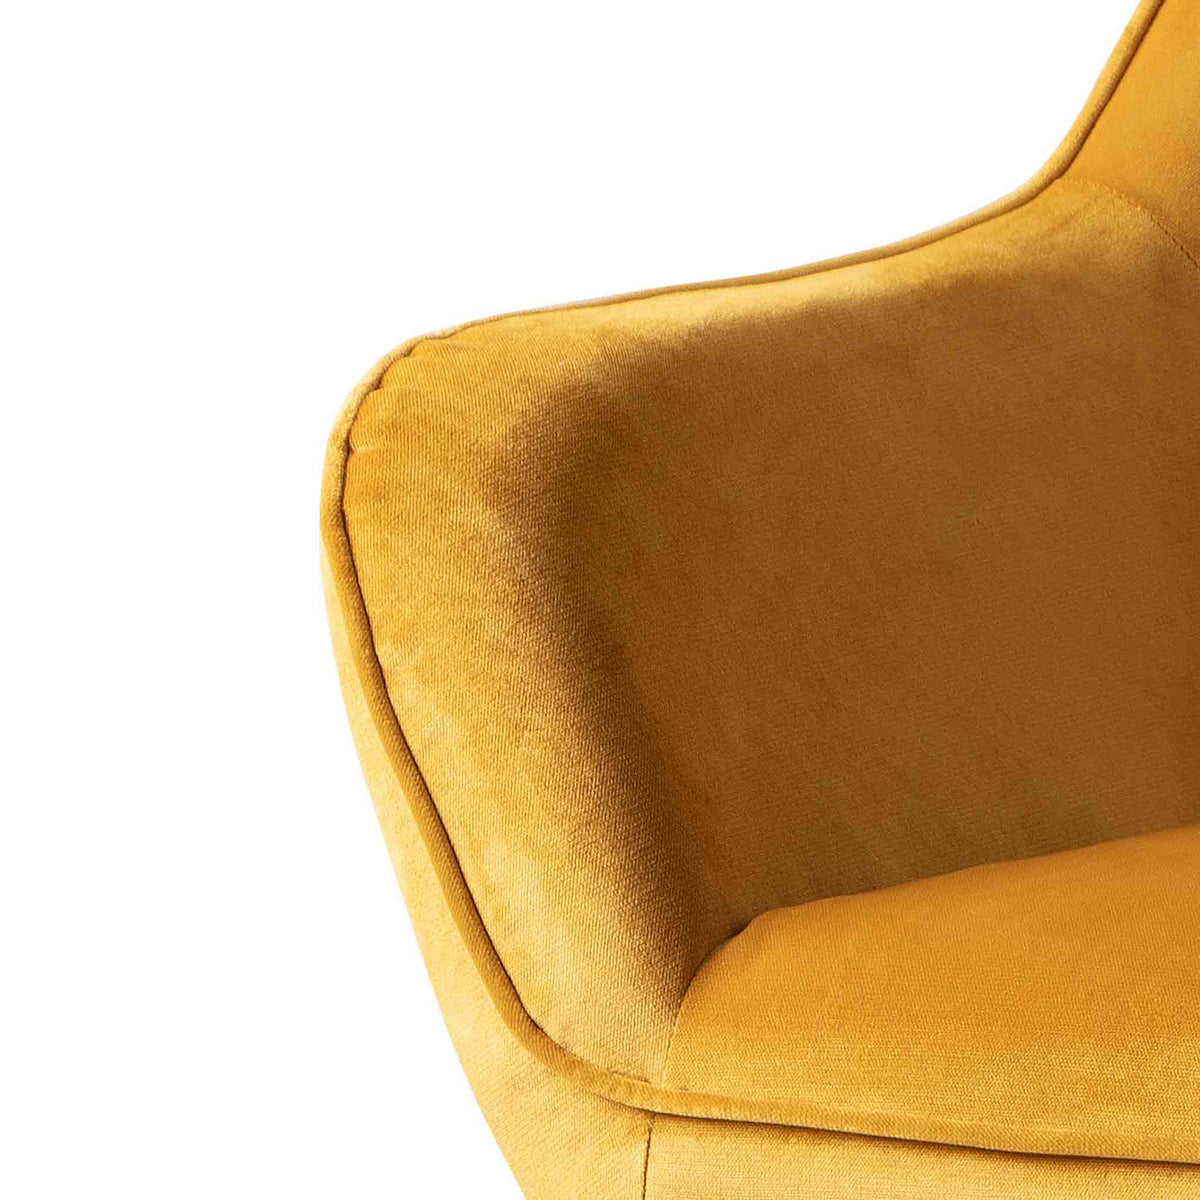 close up of the upholstered velvet fabric on the Candy Gold Velvet Accent Chair